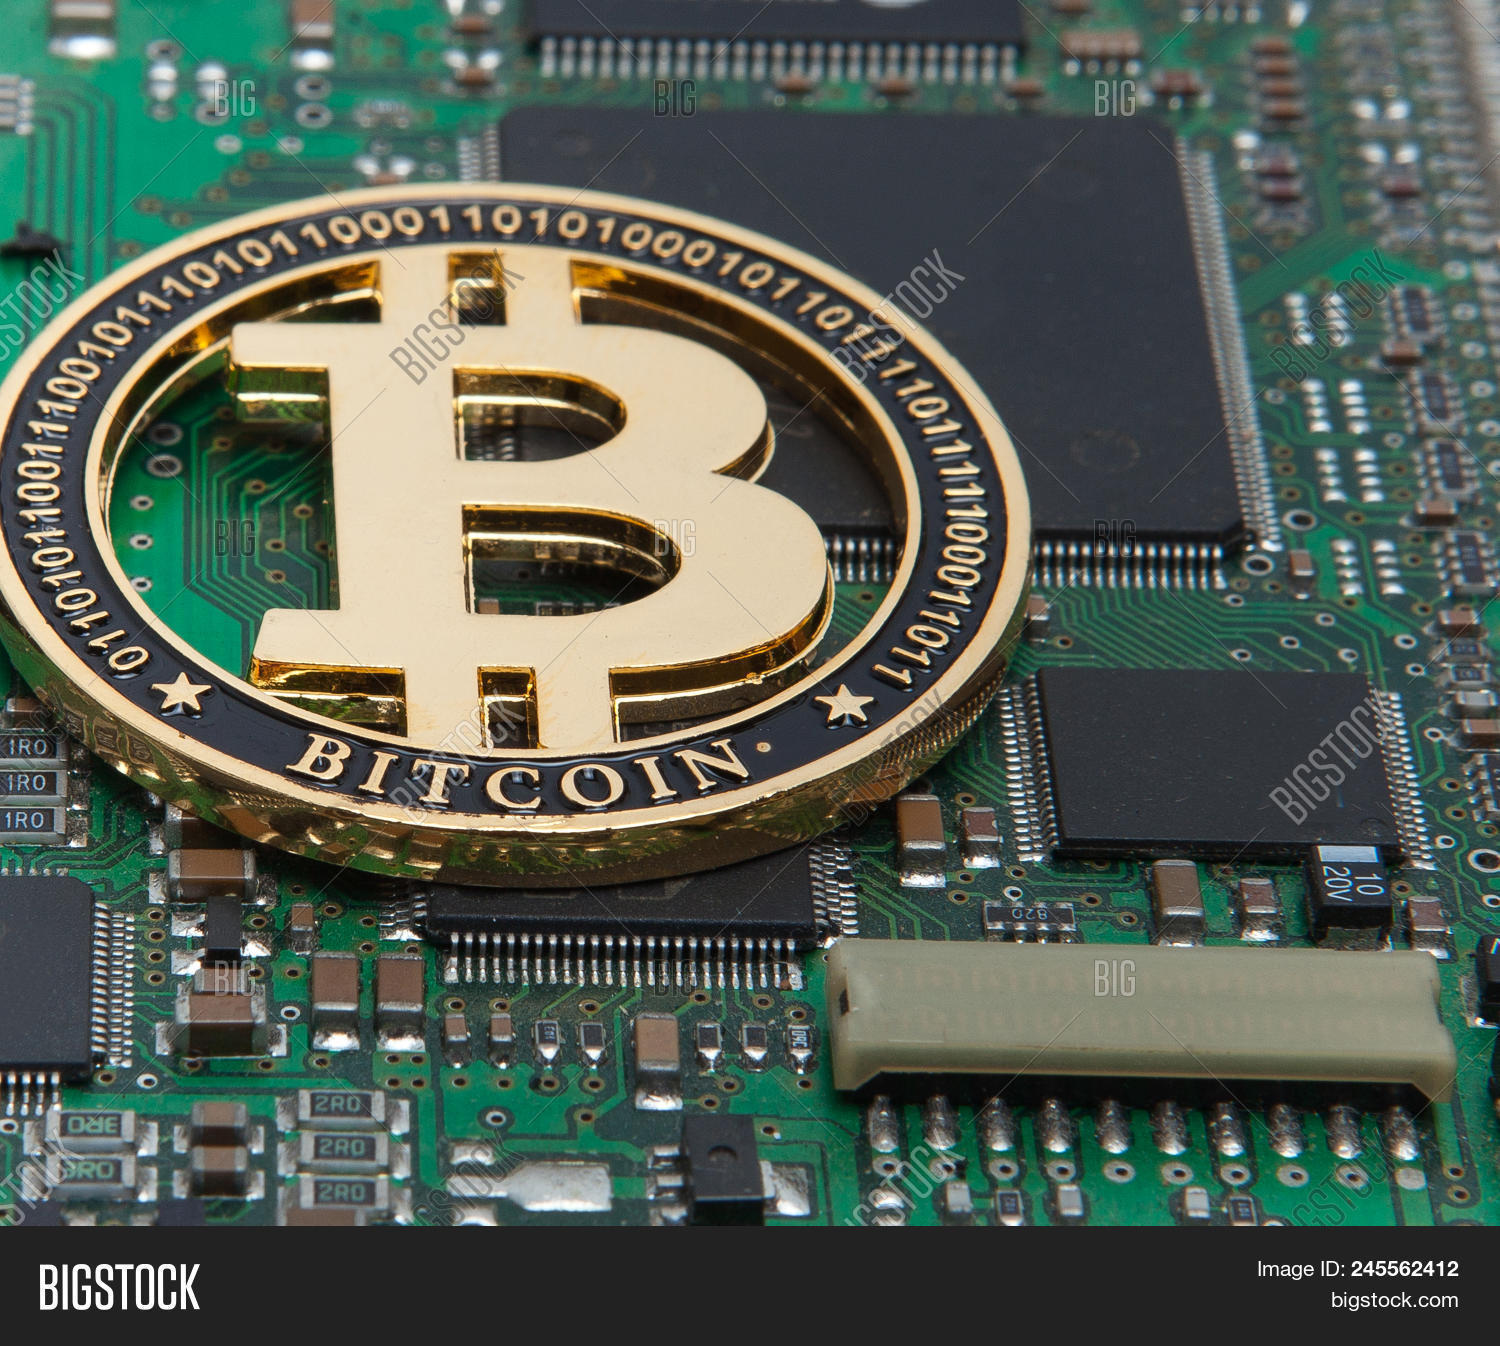 abstract,background,bank,banking,bit,bit-coin,bitcoin,board,business,cash,chip,circuit,closeup,coin,commerce,computer,concept,conceptual,crypto,cryptocurrency,cryptography,currency,device,digital,ecommerce,economy,electronic,exchange,finance,financial,gold,golden,internet,manufacturing,market,metal,microchip,microprocessor,mining,money,network,pay,payment,processor,symbol,system,technology,trade,virtual,wallet